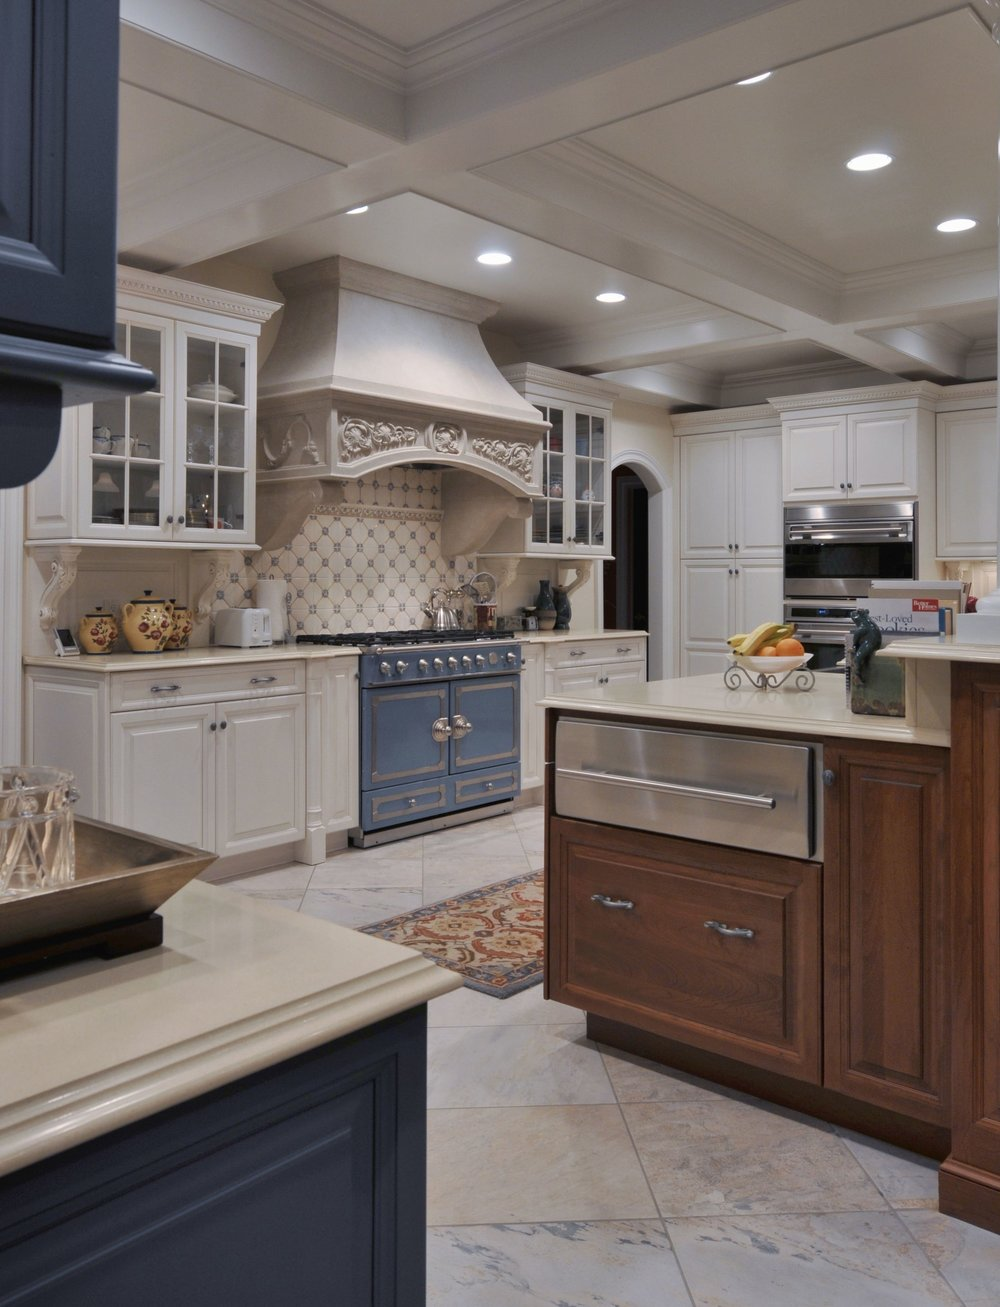 Traditional style kitchen with tiled floors